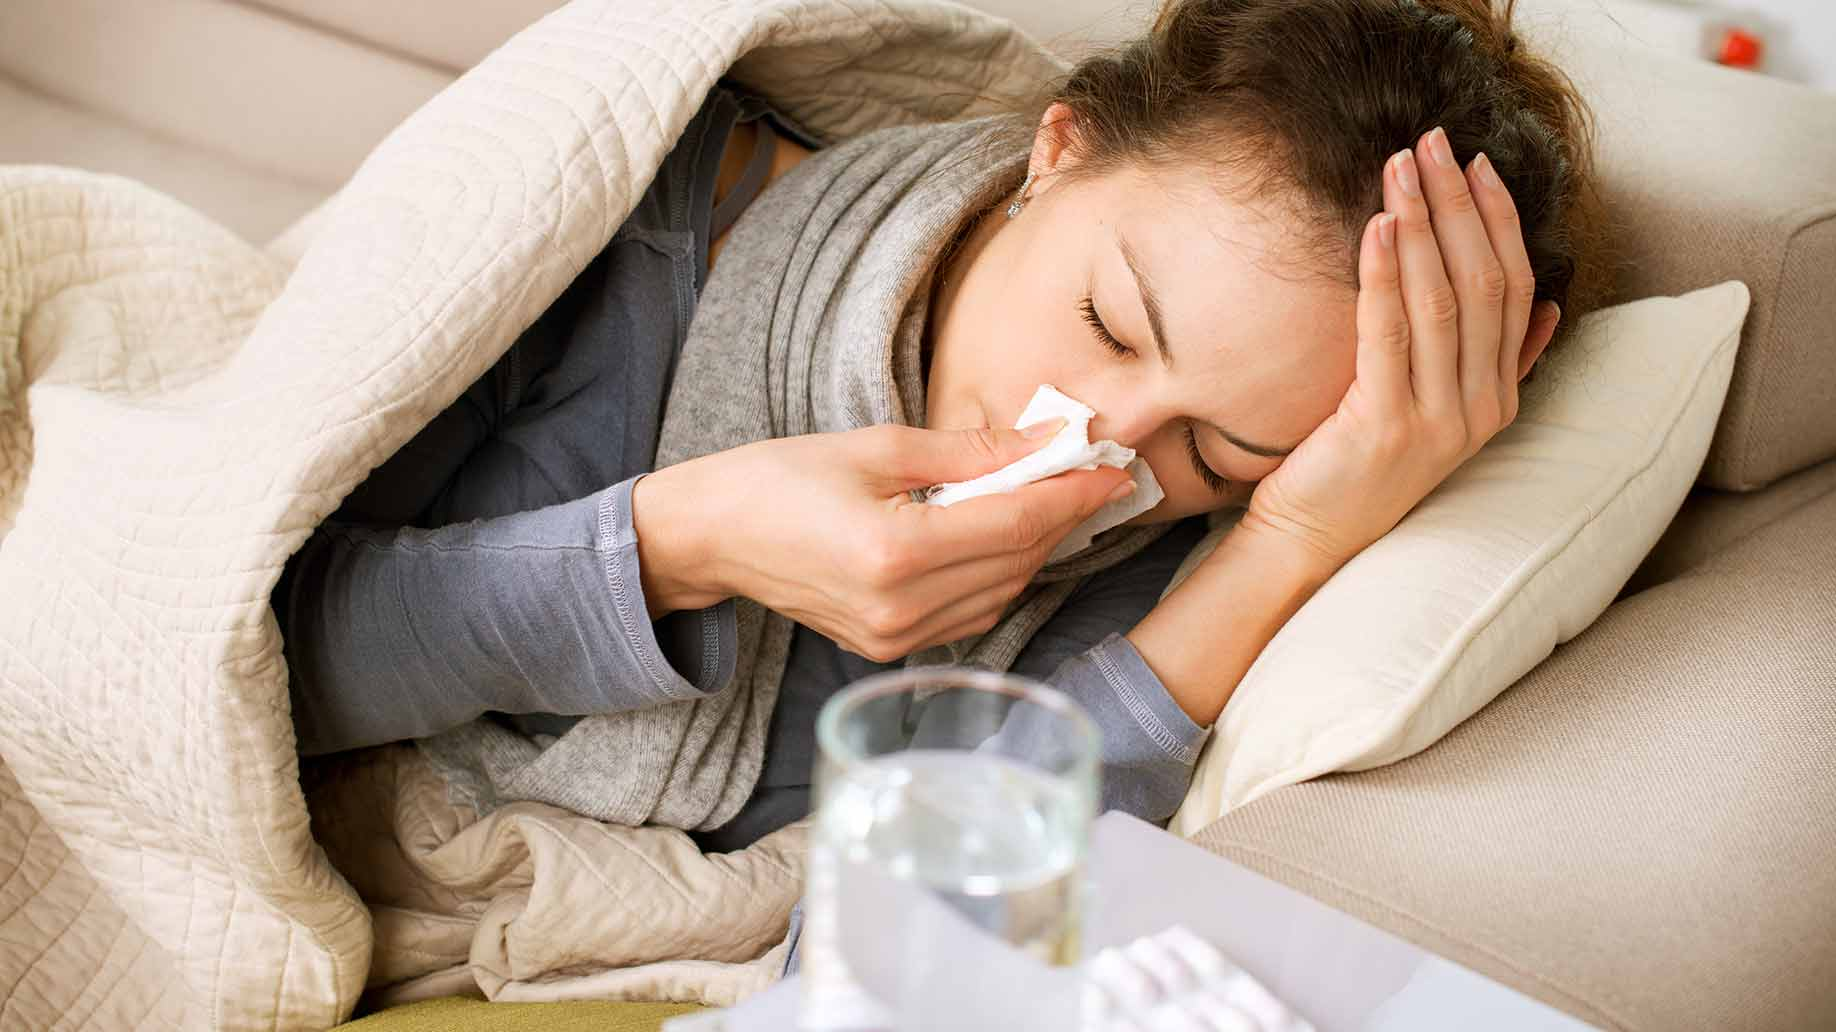 THREE NATURAL COLD AND FLU REMEDIES